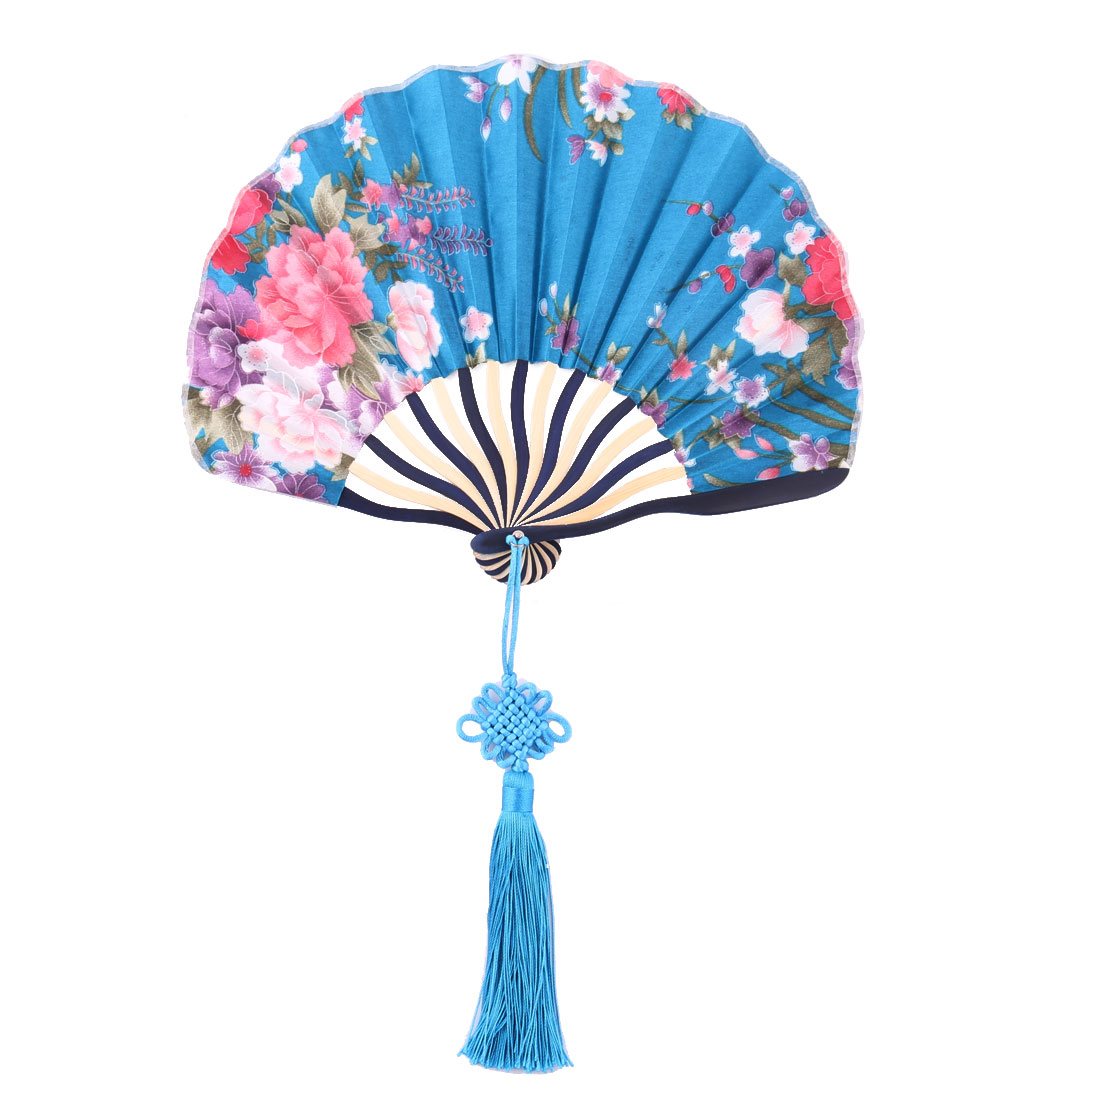 Bamboo Frame Flower Pattern Chinese Style Handheld Dancing Folding Fan Teal Blue